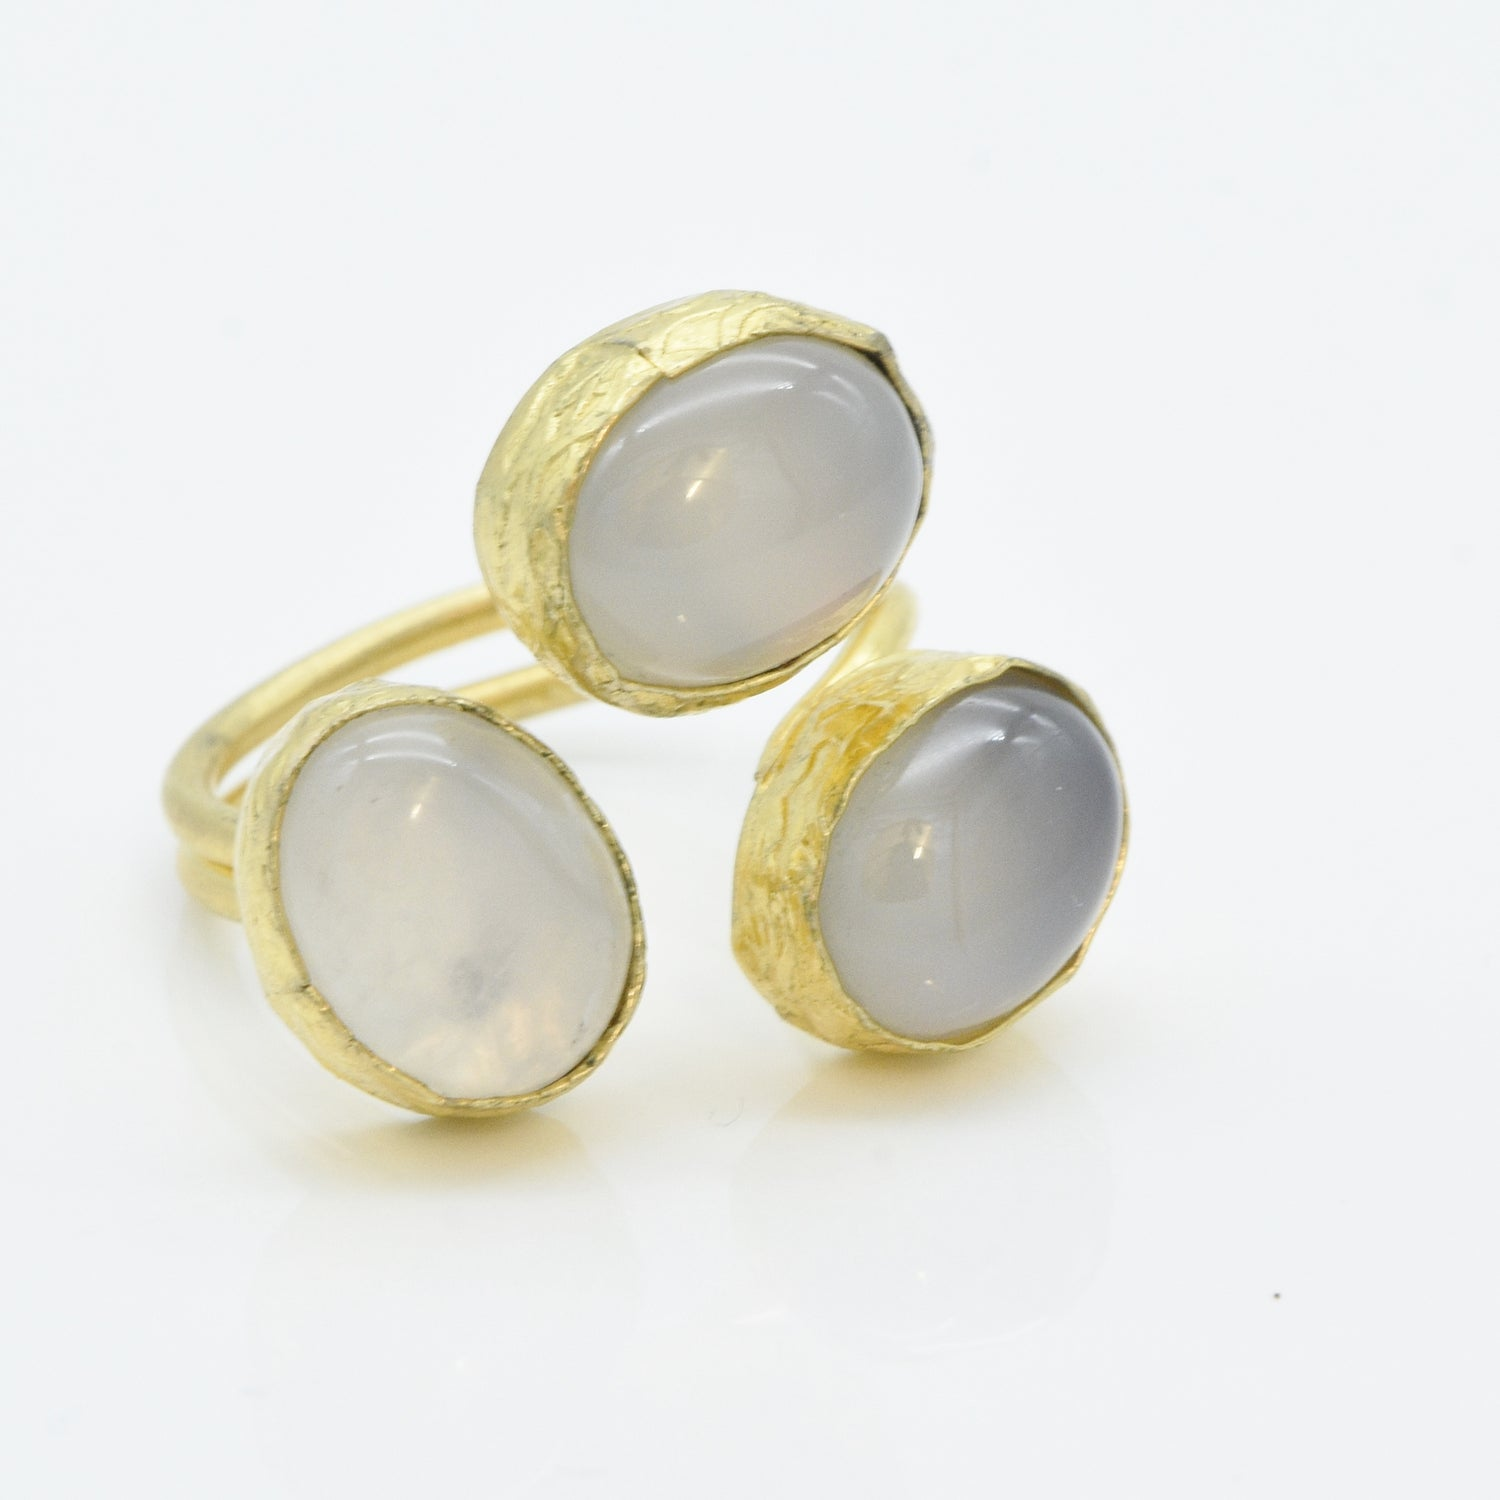 Aylas Agate adjustable ring - 21ct Gold plated brass - Handmade in Ottoman Style by Artisan